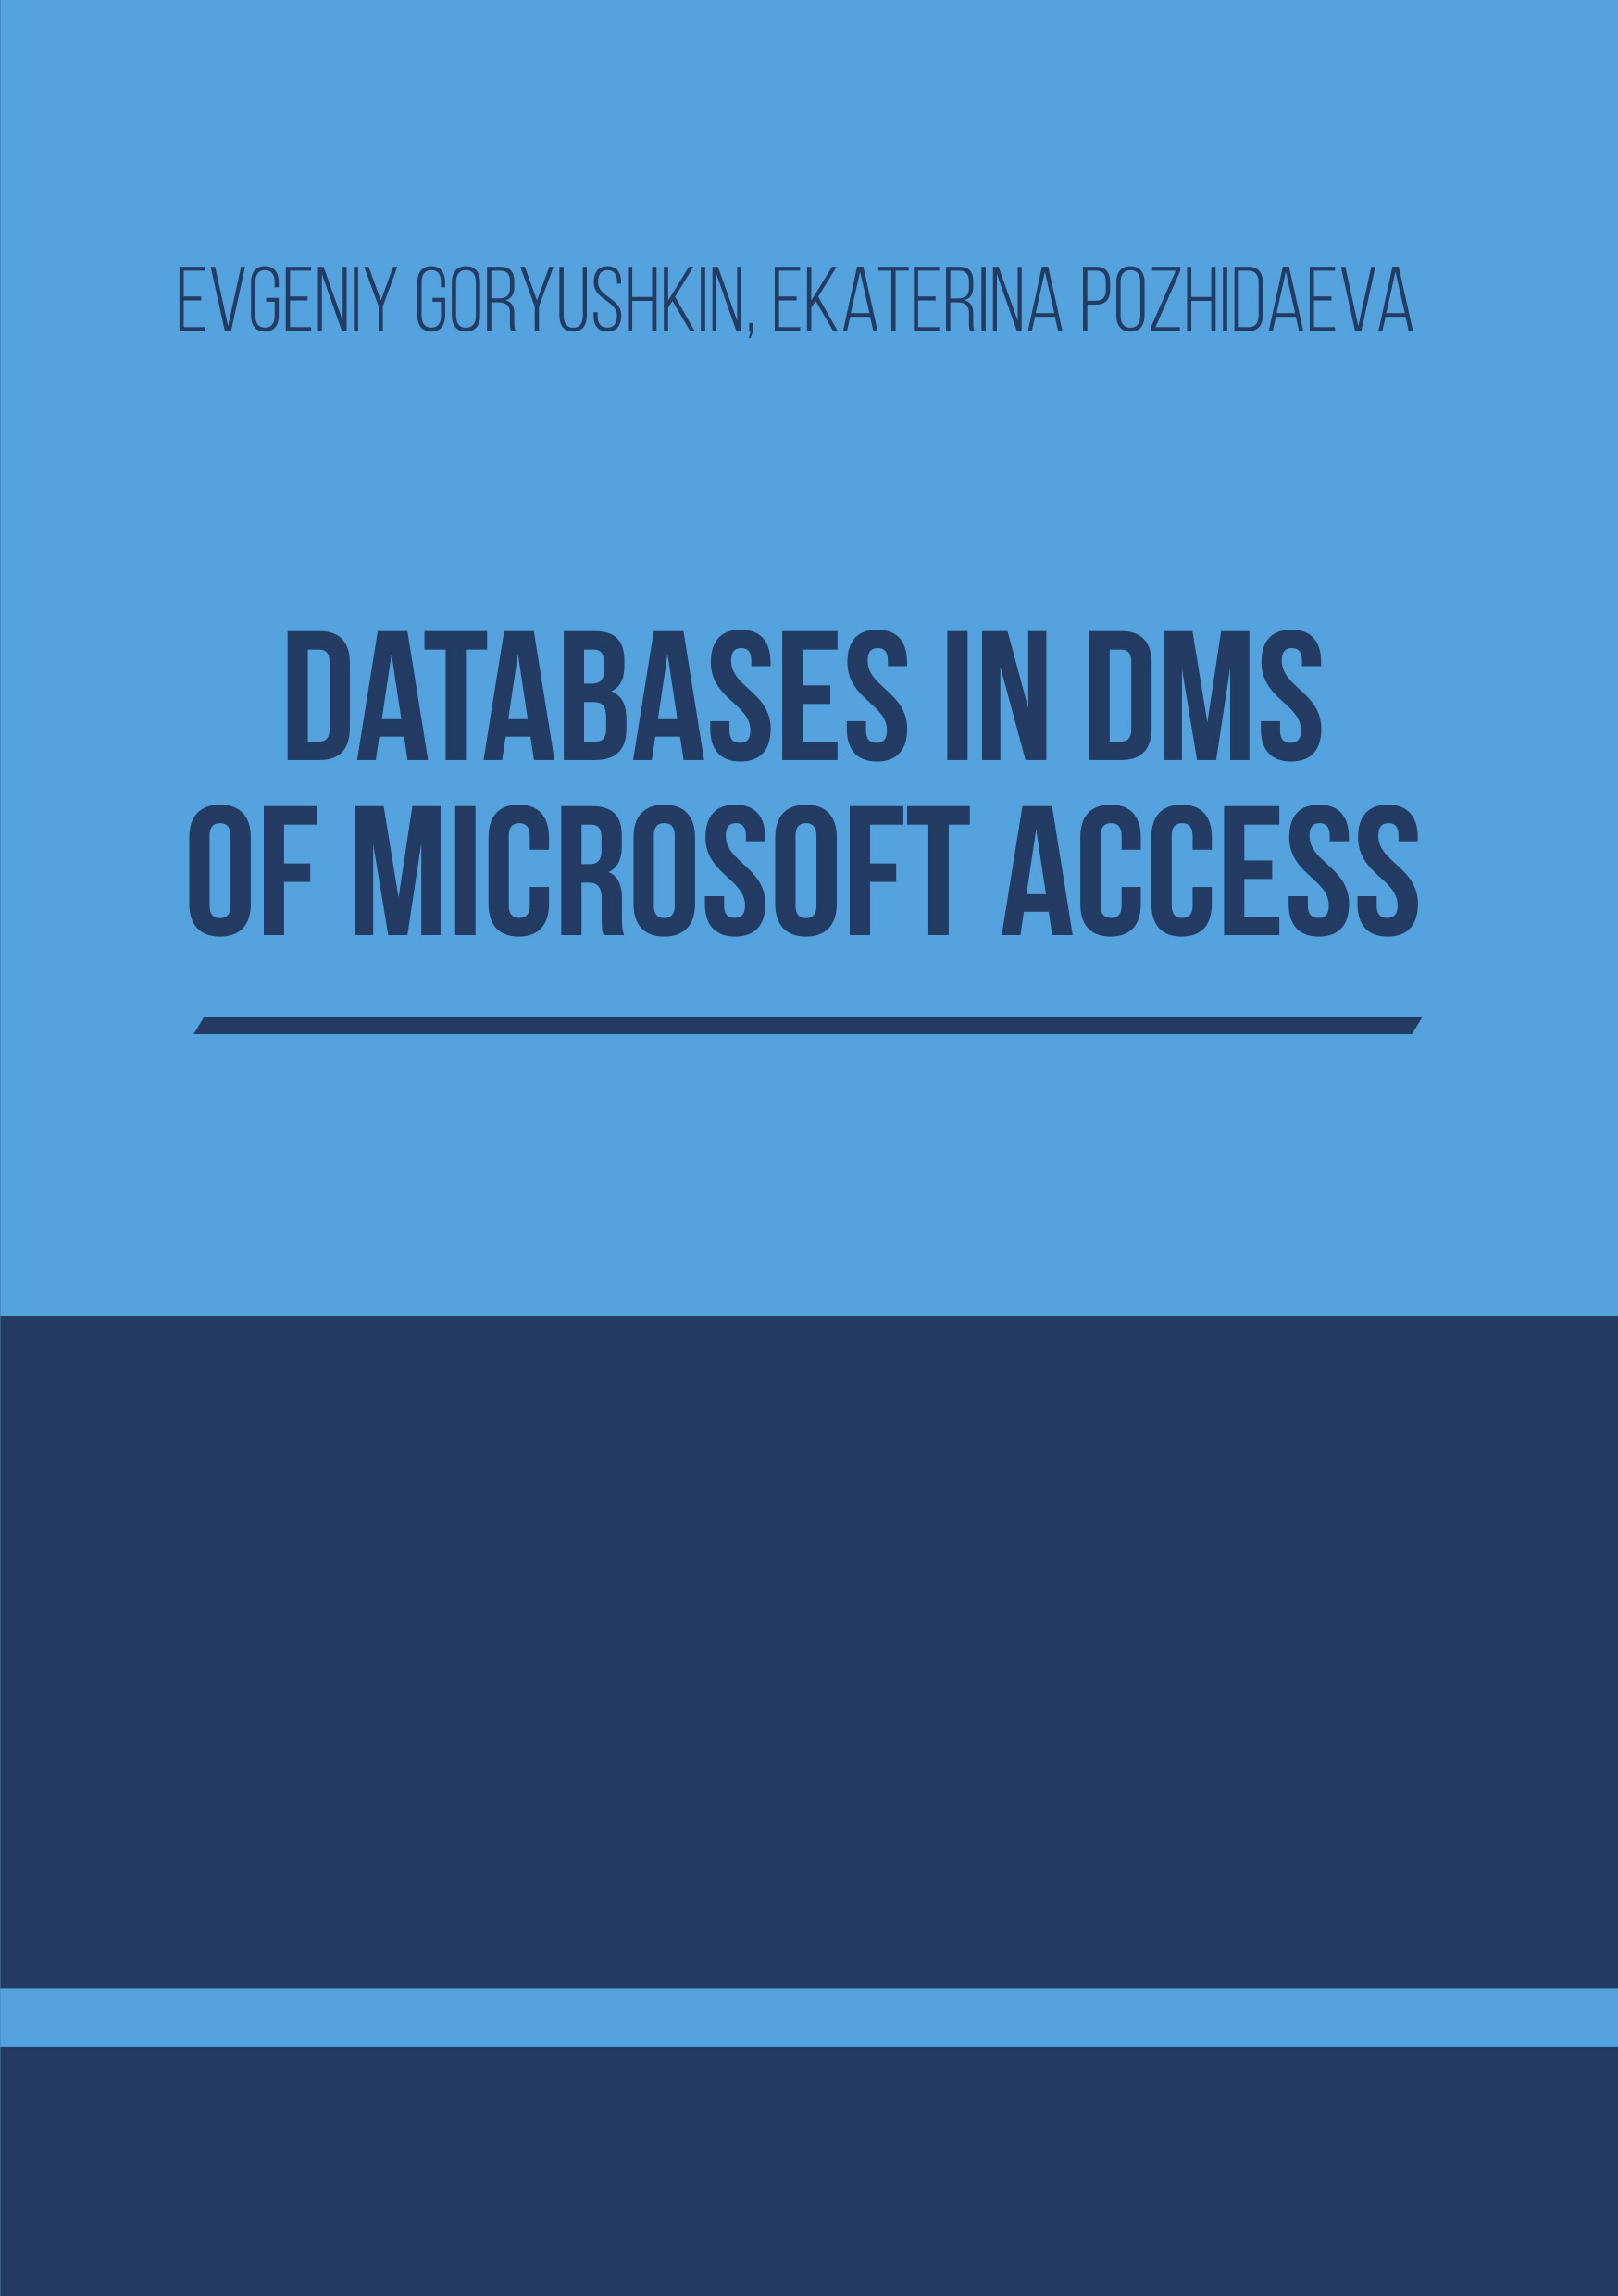 Evgeniy Goryushkin Databases in DMS of Microsoft Access: methodical handbook on computer science evaluating professional development of teacher educators in ethiopia